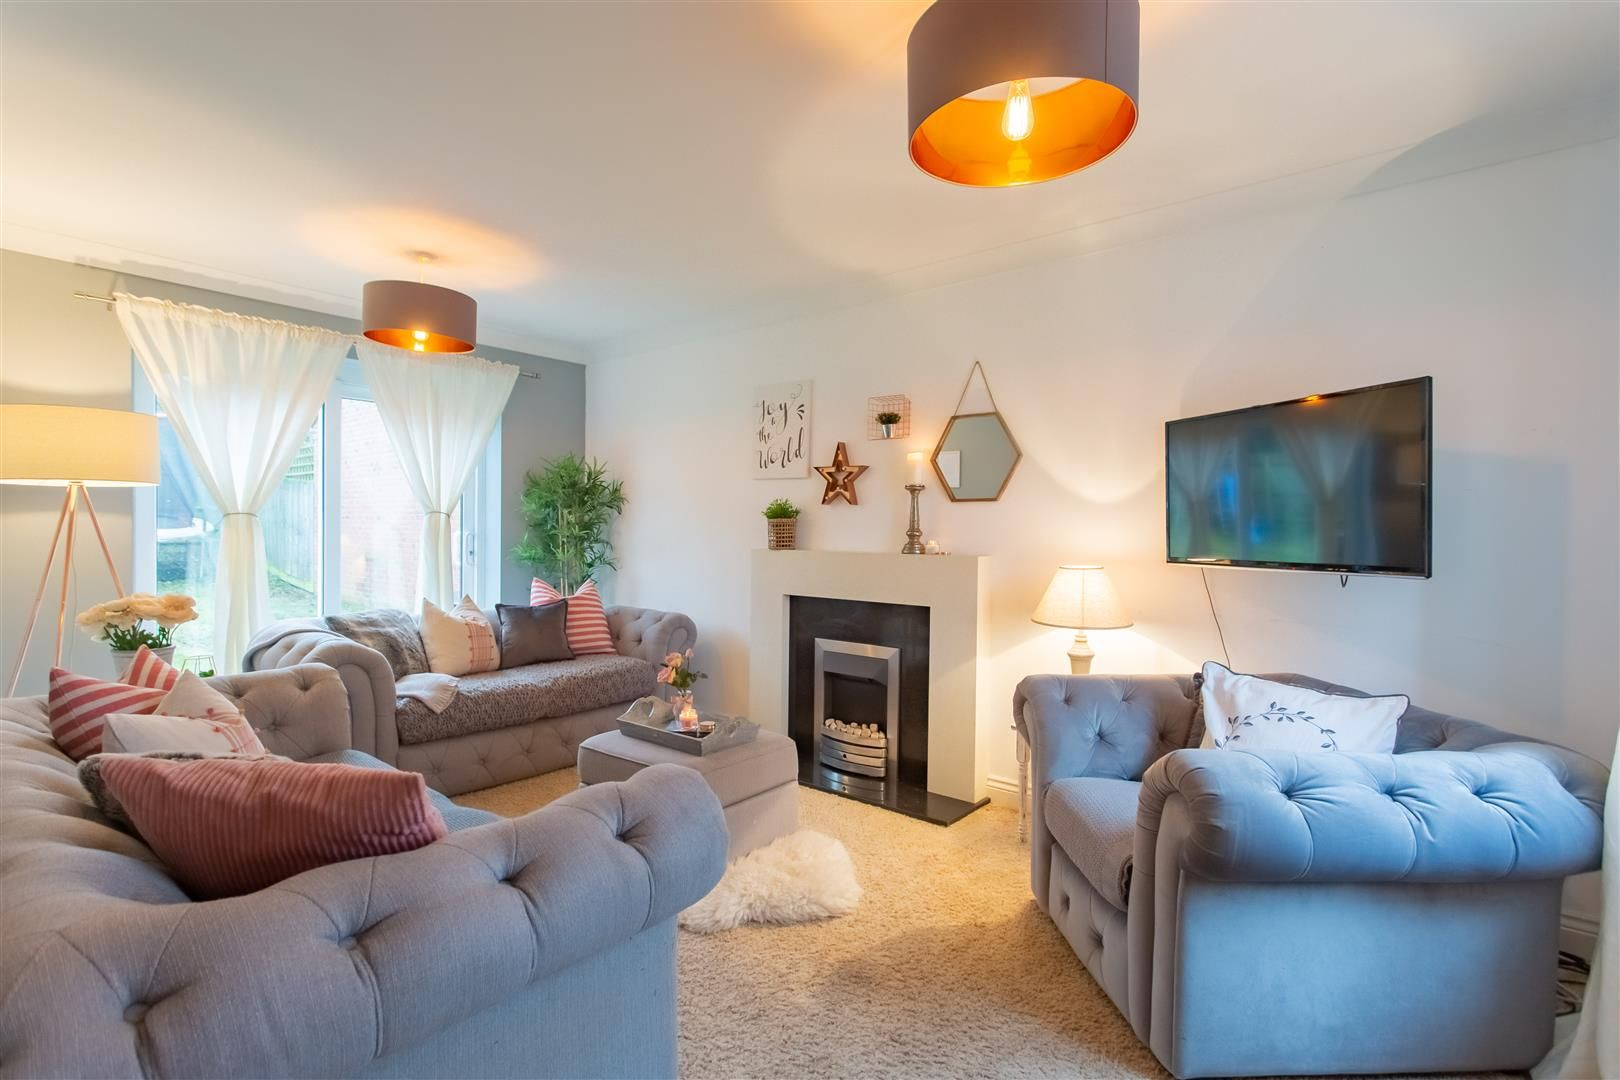 3 bed detached for sale in Hereford 3